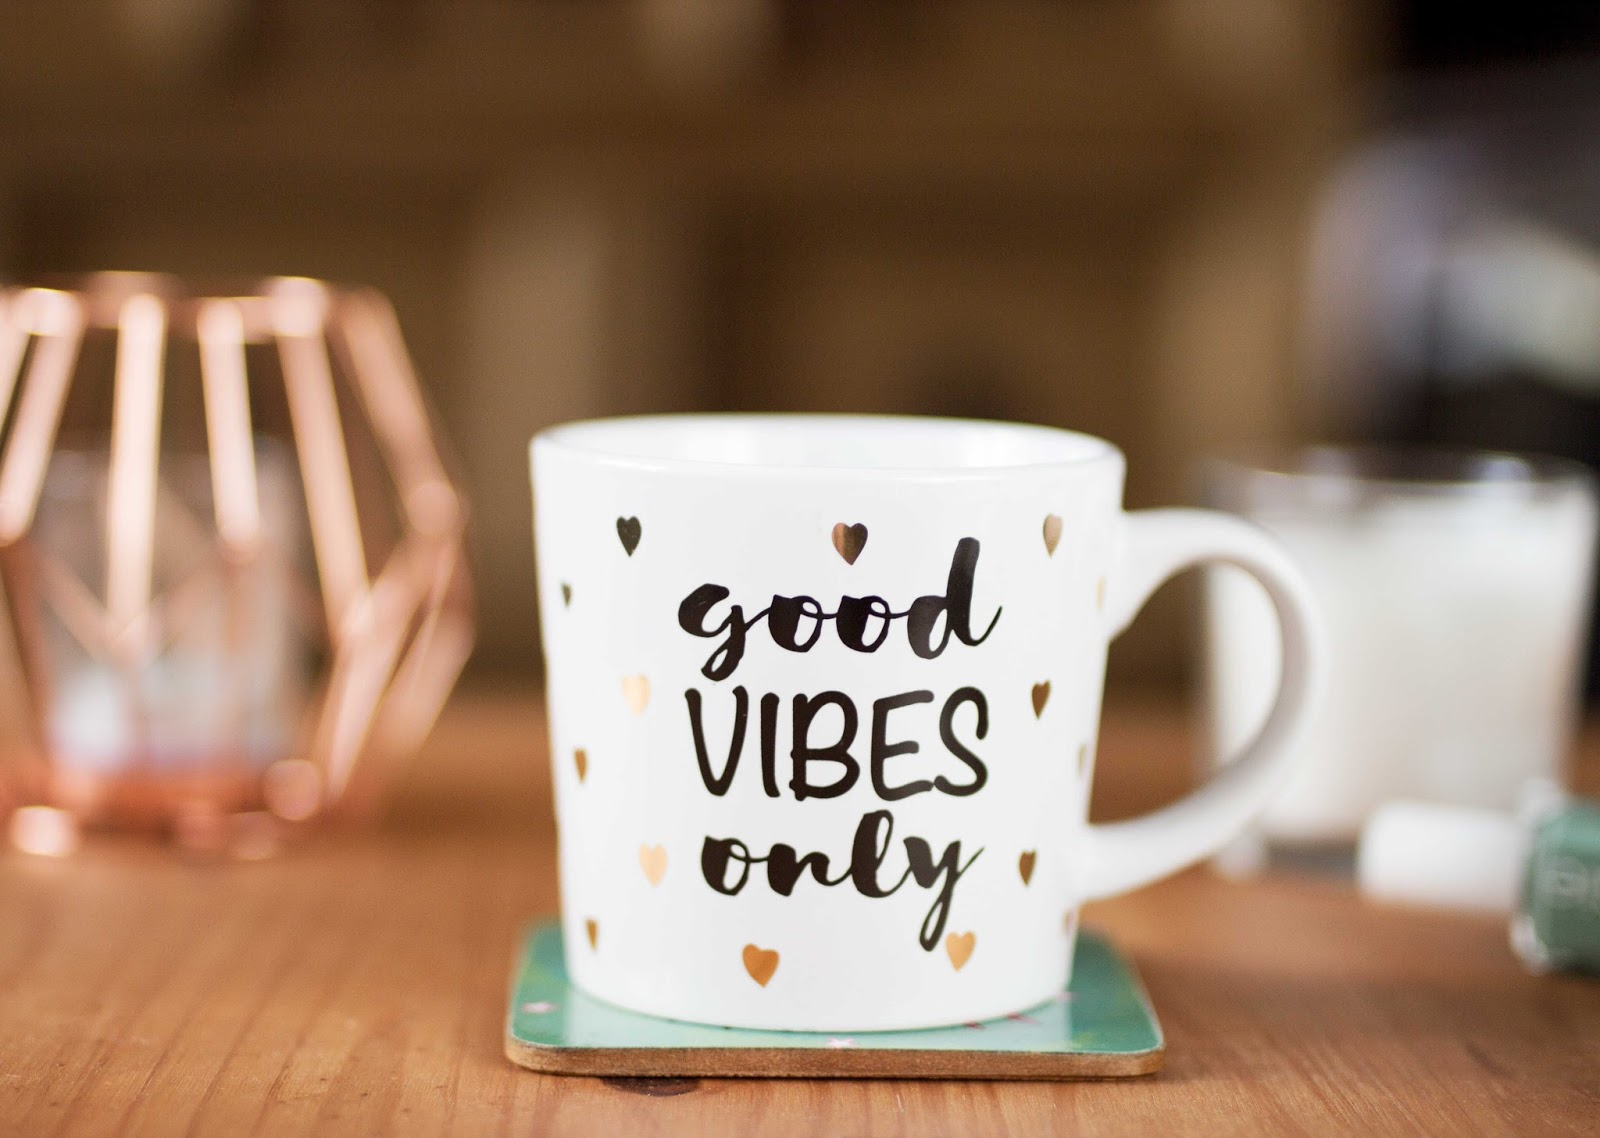 Good Vibes Only Mug, Mug, Beauty Bloggers, Derby Bloggers, Derbyshire Bloggers, Belper, Lifestyle Bloggers, Mental Health Bloggers, Katie Writes, Katie Writes Blog,